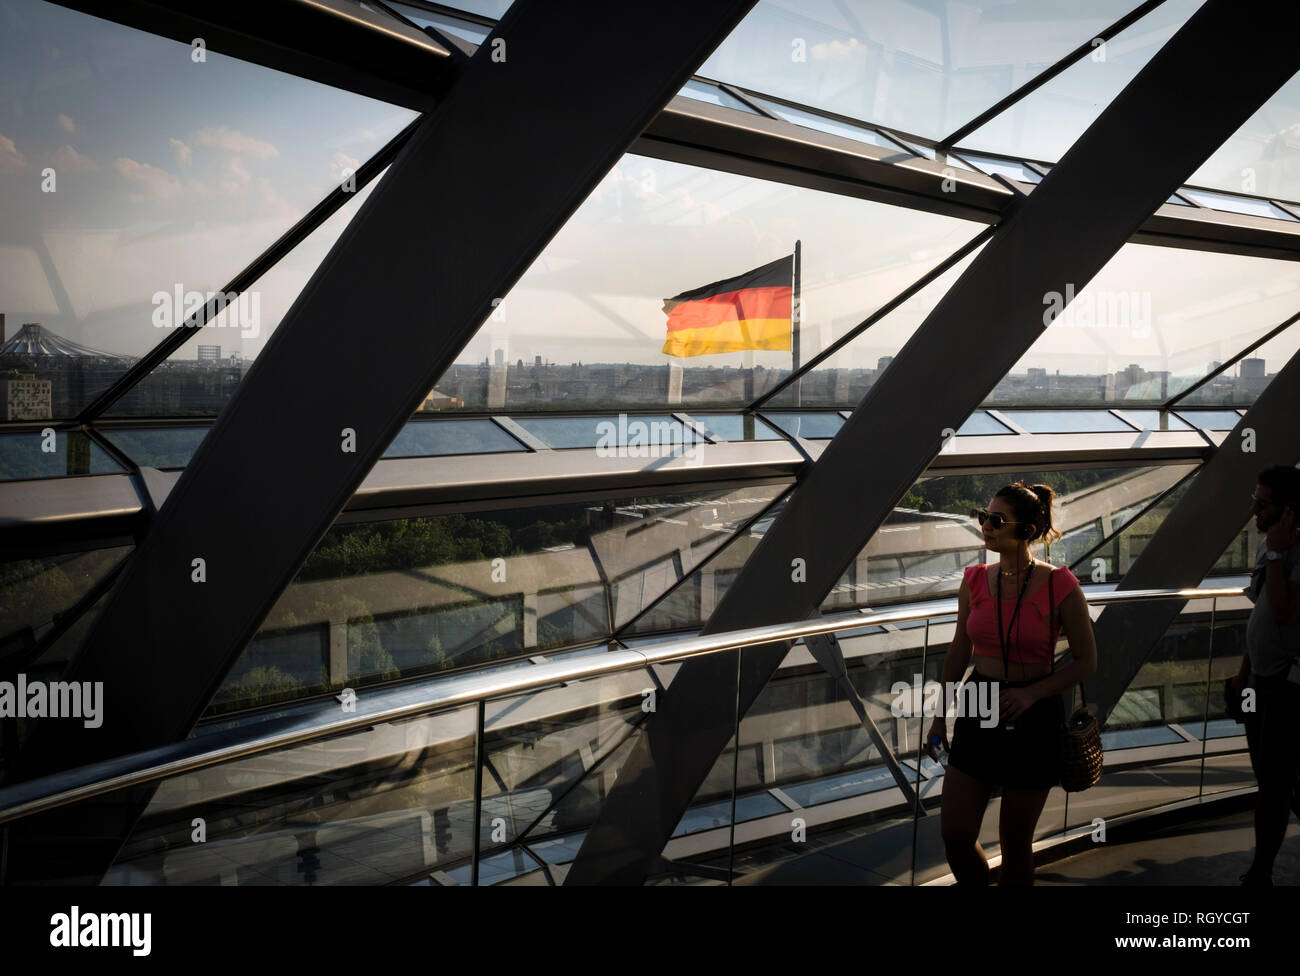 An interior view of the dome in the Reichstag building in Berlin. The historical seat of Germany's parliament since the time of the Holy Roman Empire, it was damaged during Word War II. The ruined building was made safe against the elements and partially refurbished in the 1960s, but no attempt at full restoration was made until after German reunification on 3 October 1990, when it underwent a reconstruction led by architect Norman Foster. After its completion in 1999, it once again became the meeting place of the German parliament: the modern Bundestag. Stock Photo